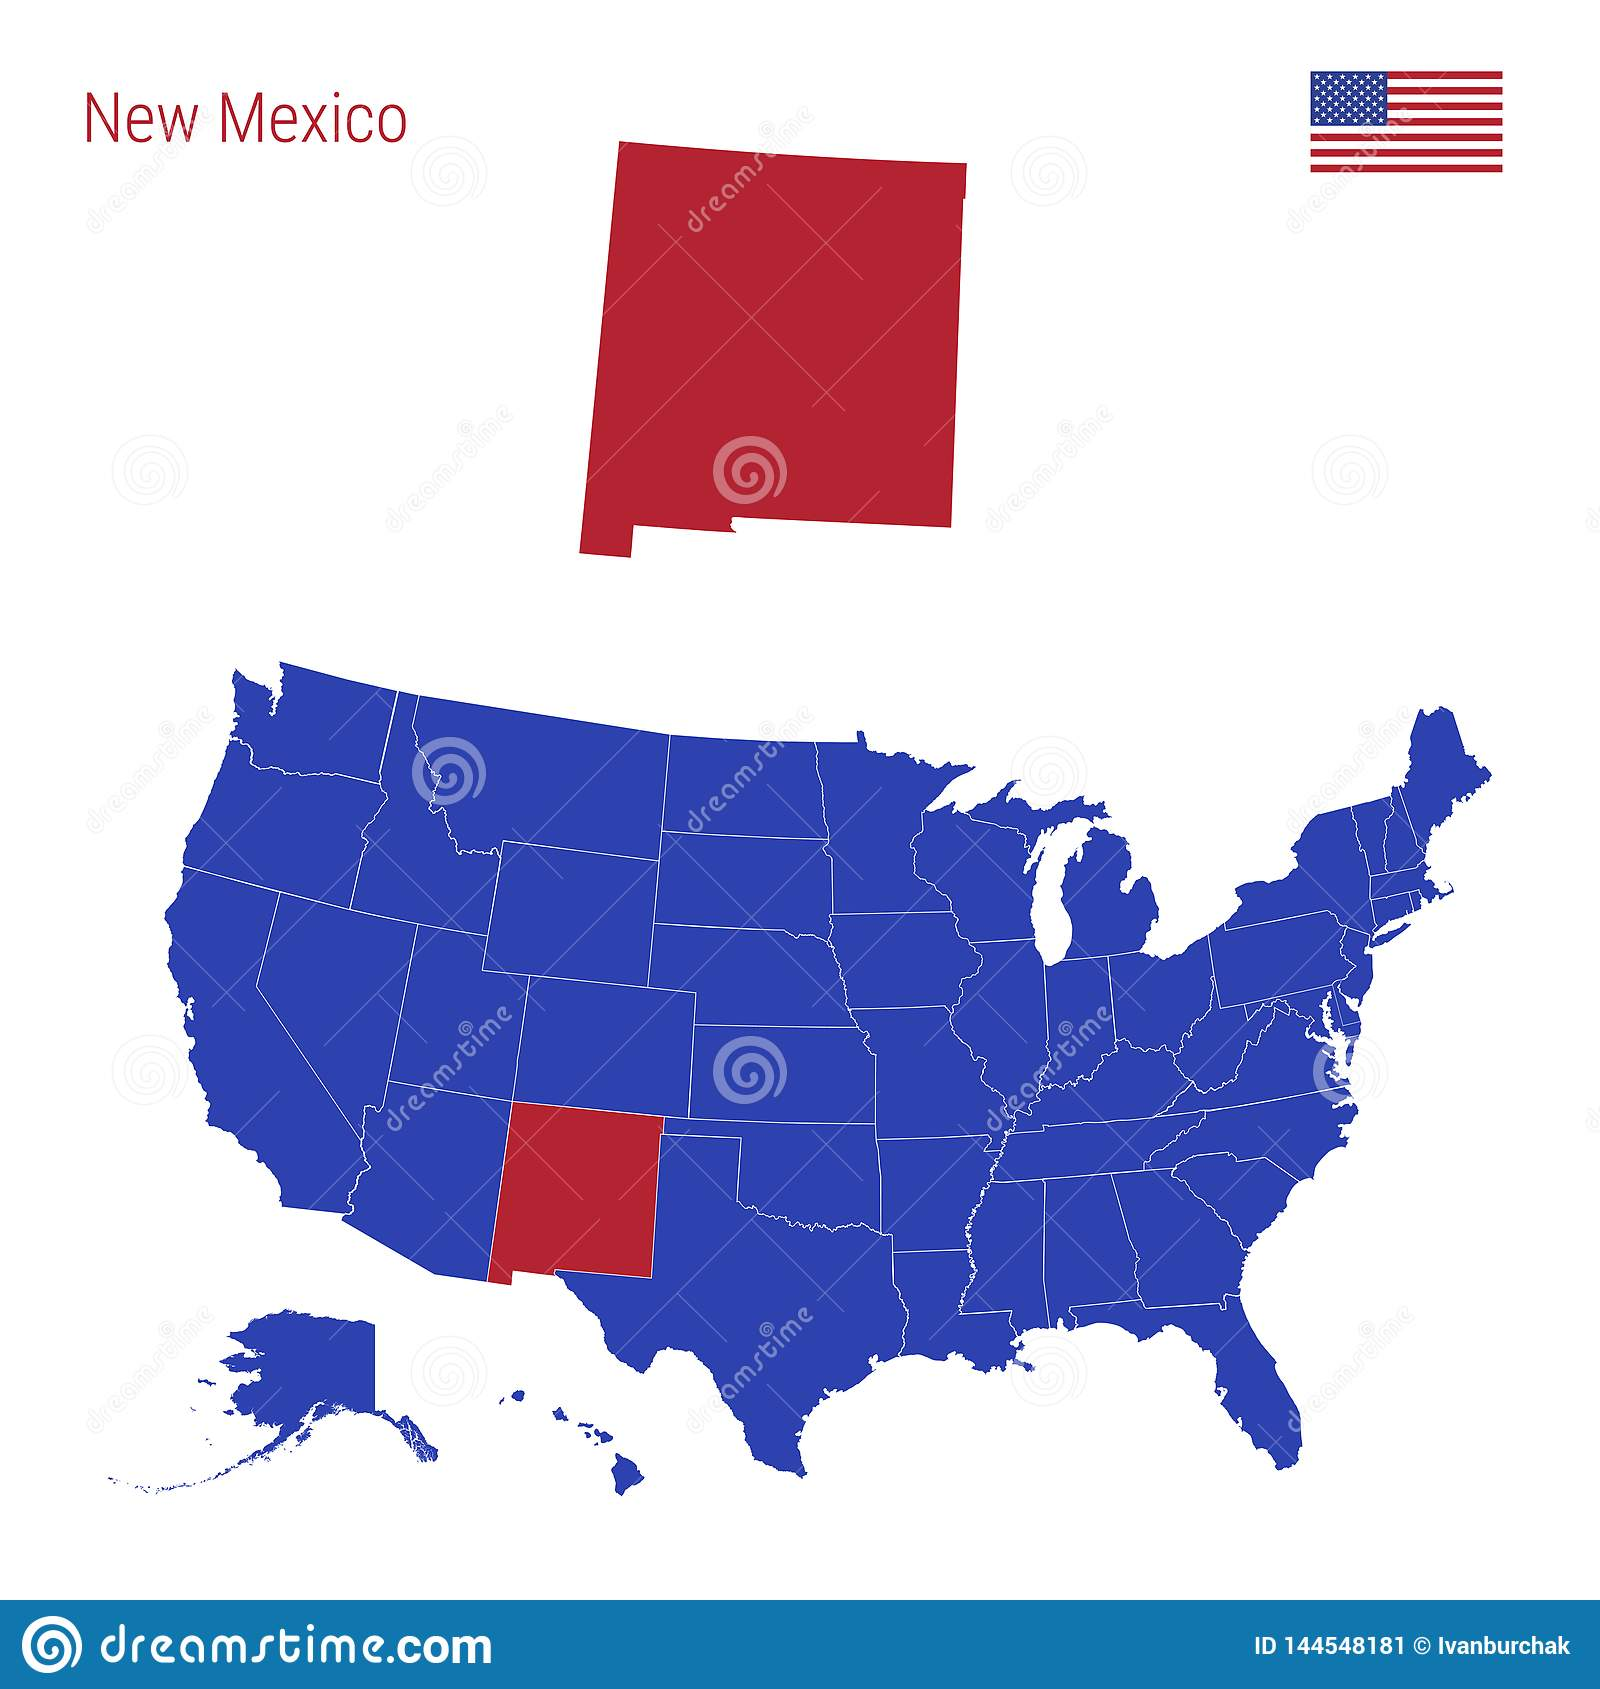 The State Of New Mexico Is Highlighted In Red. Vector Map Of ...